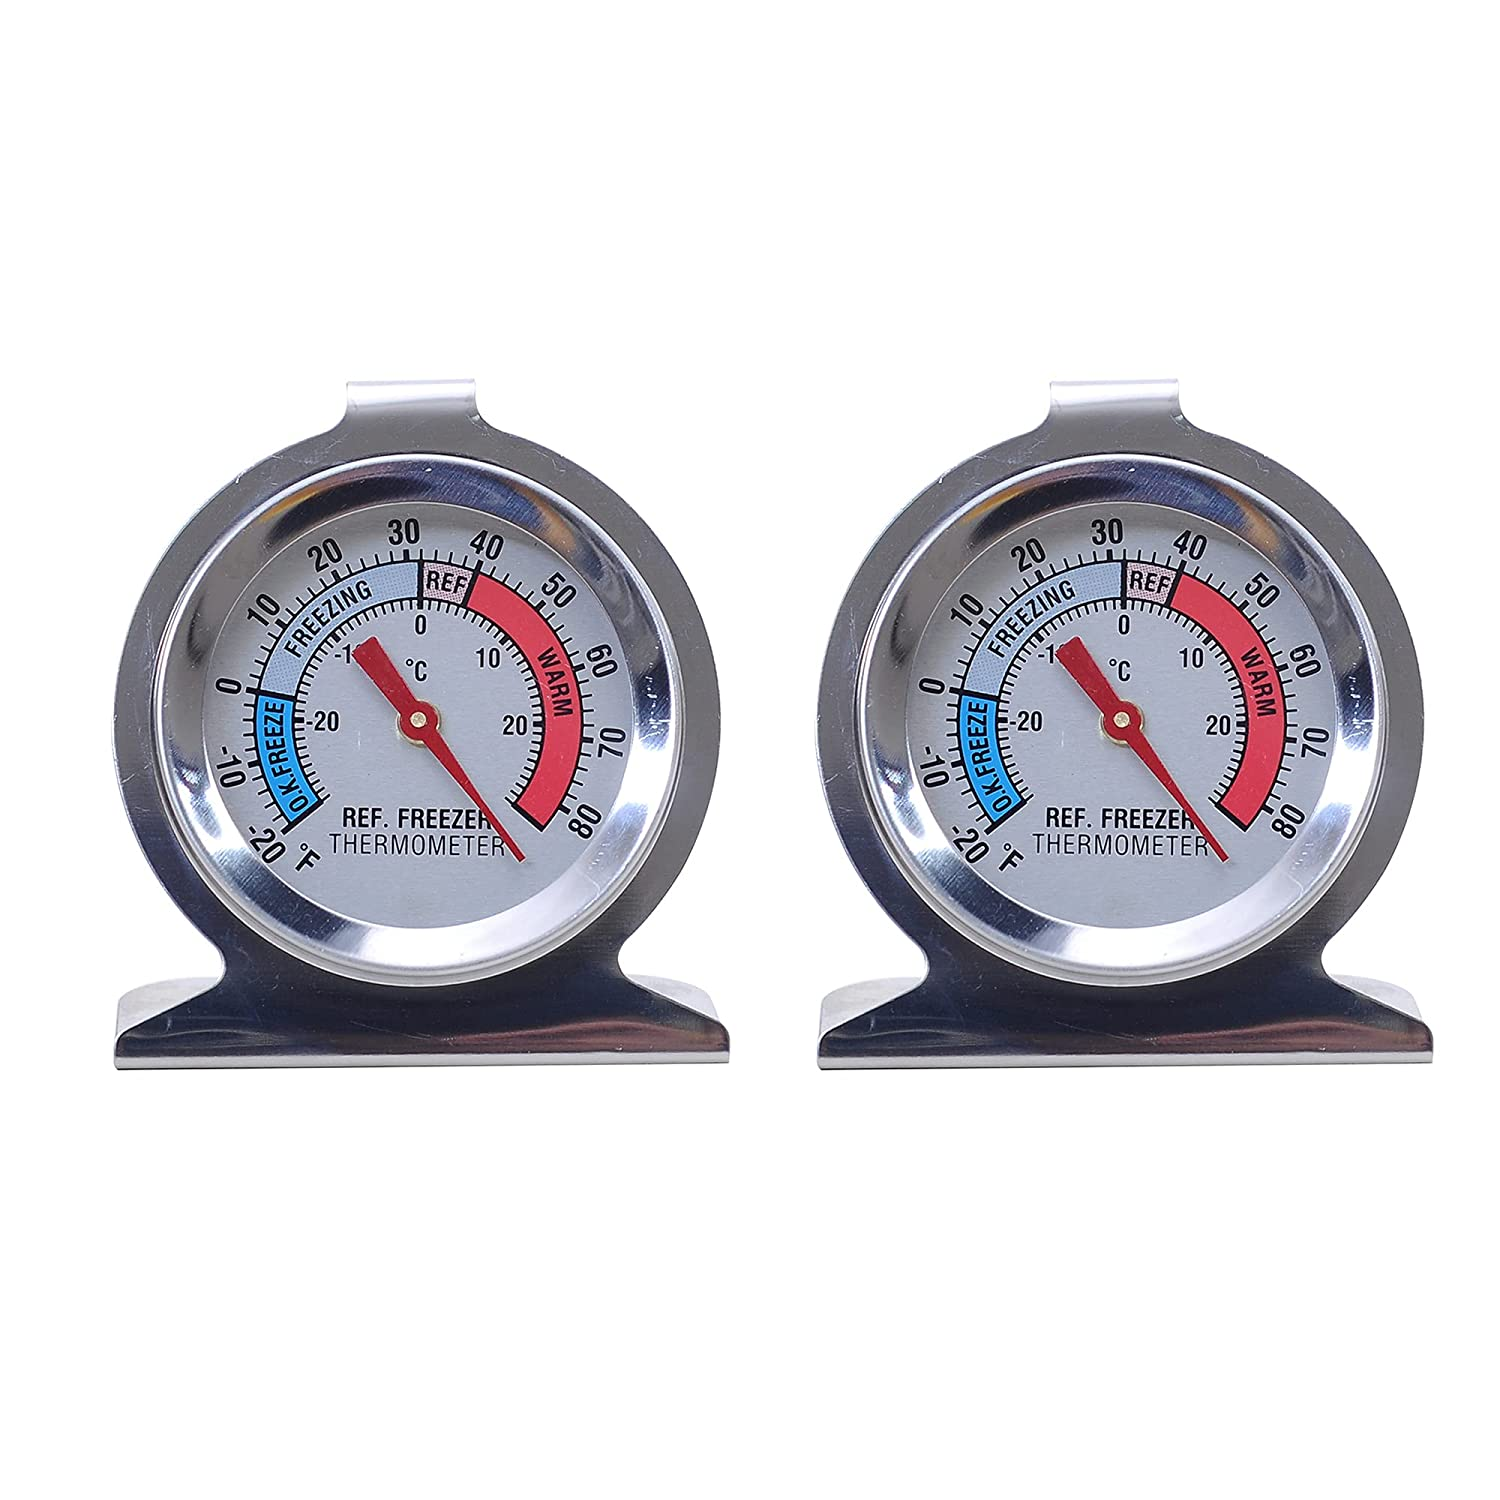 MUXIJIA Refrigerator Thermometer for Home Stainless Fixed price for sale Fridg Steel SEAL limited product